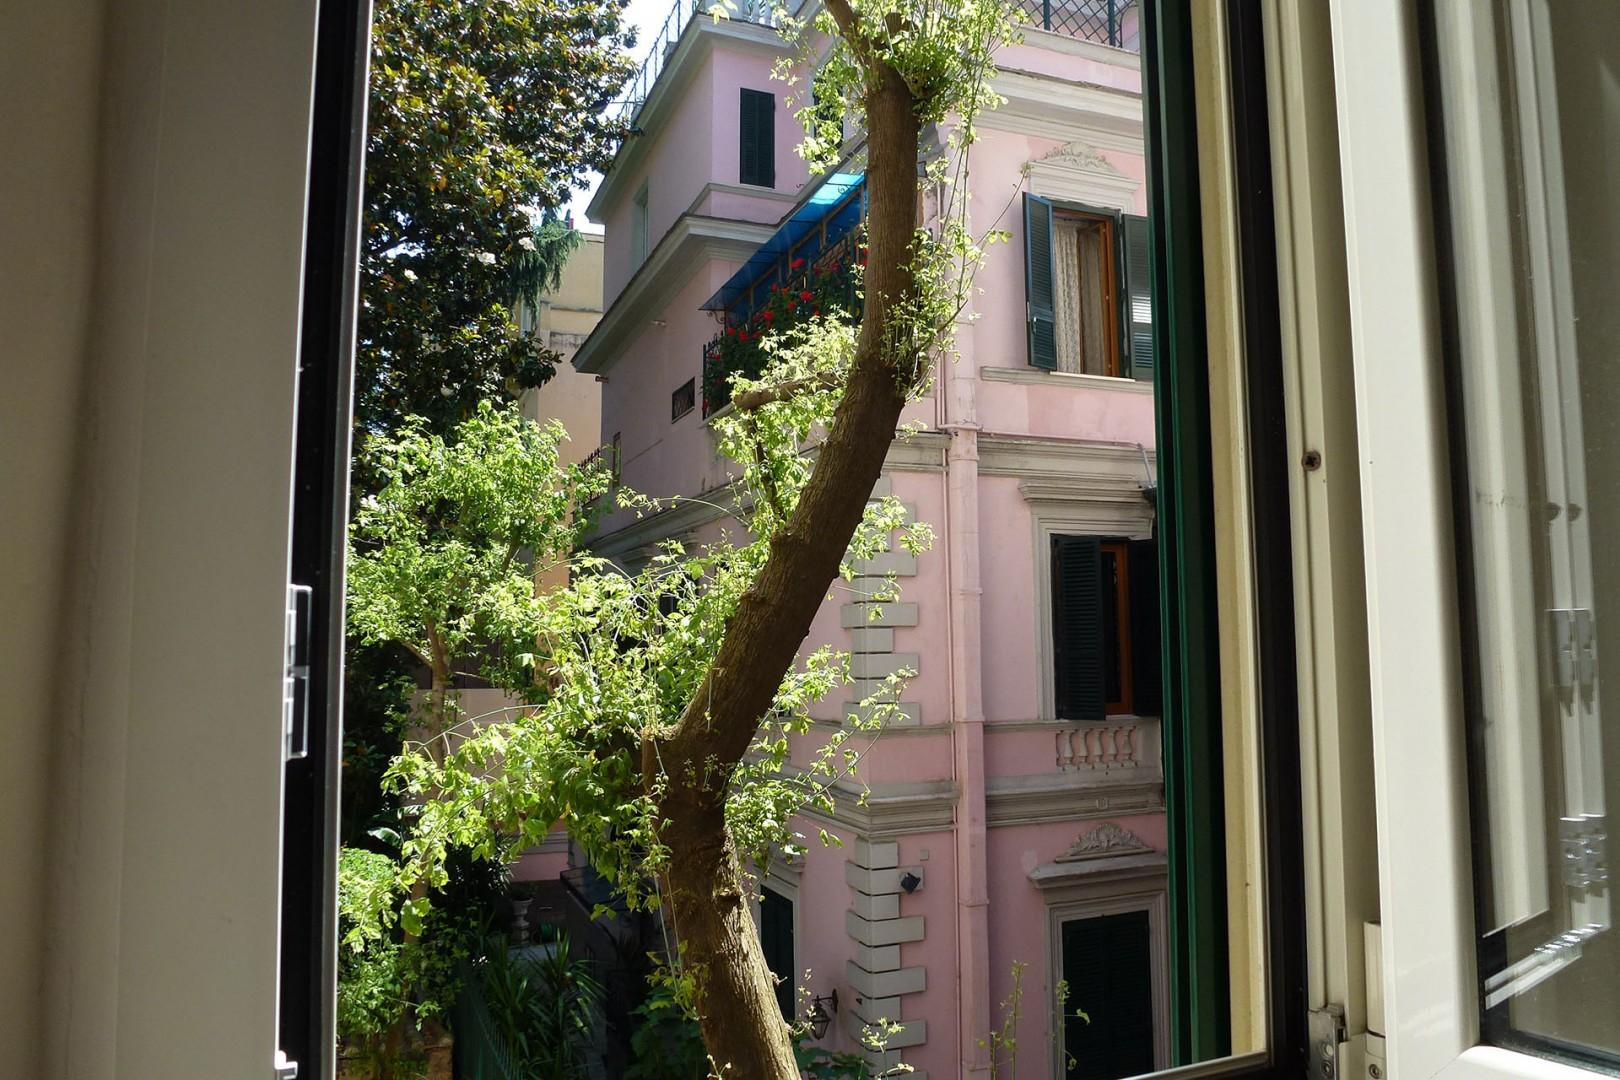 Nice views from bedroom 4 of an attractive pale pink Art Nouveau building just across the way.